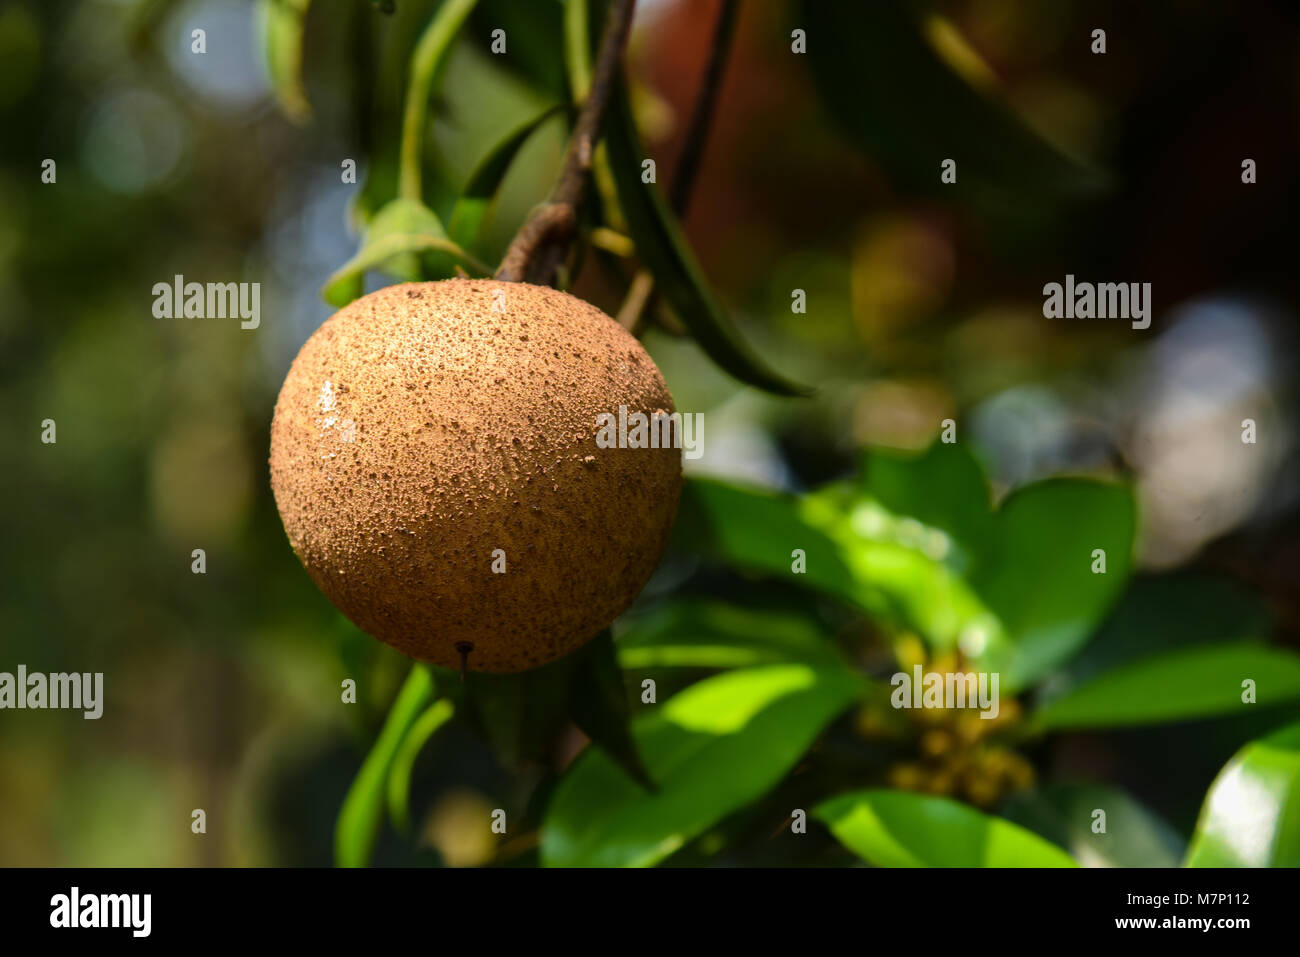 Images Of Sapota Fruit